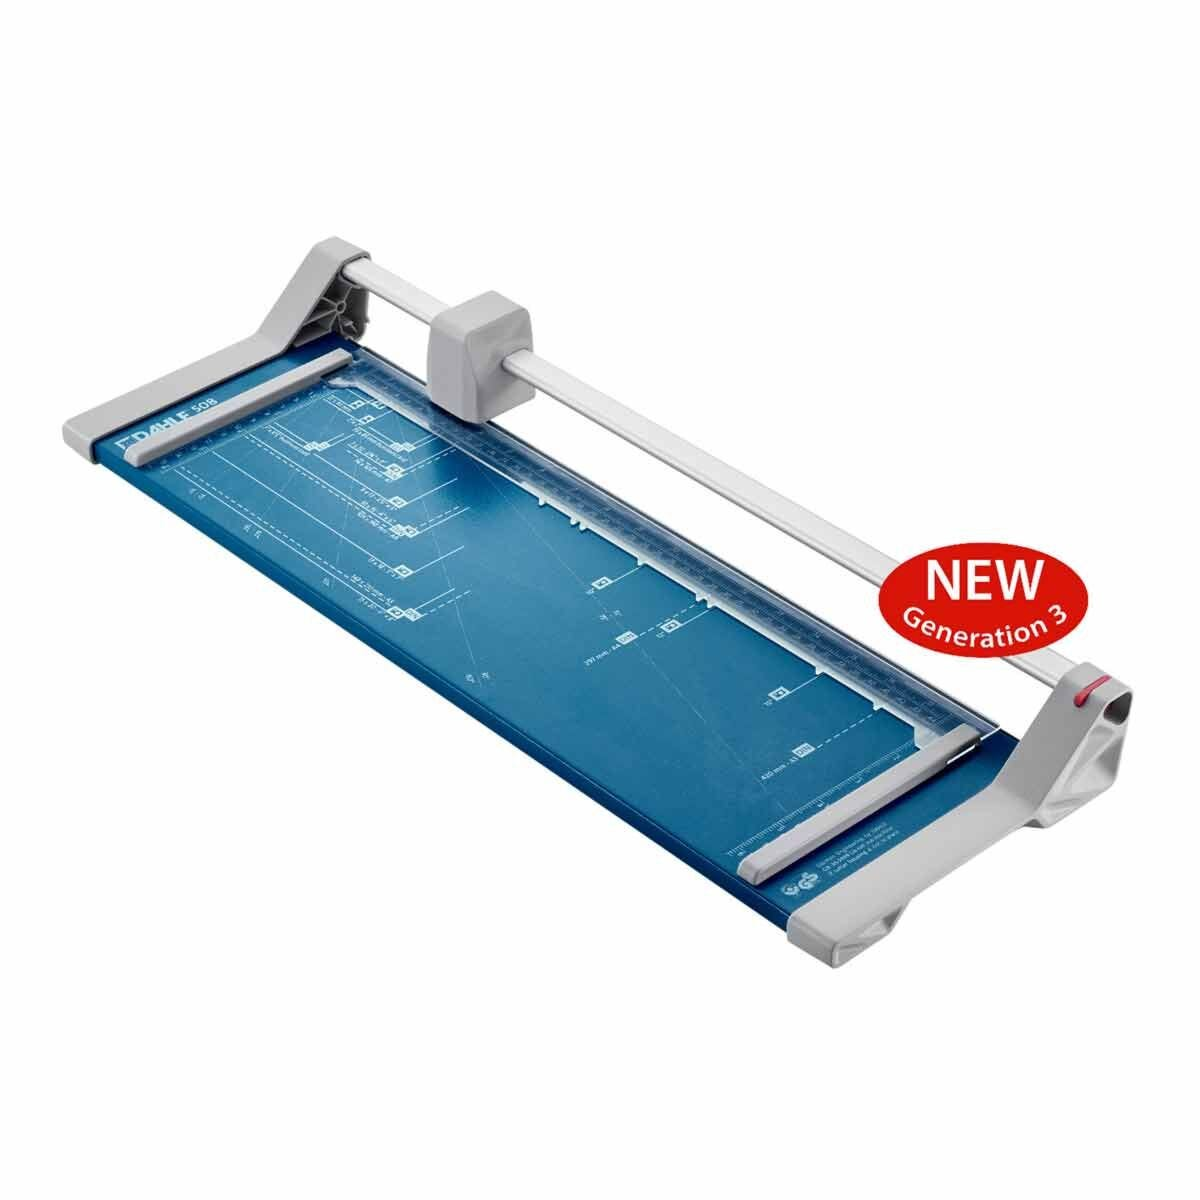 Dahle A3 Personal Trimmer 460mm Cutting Length